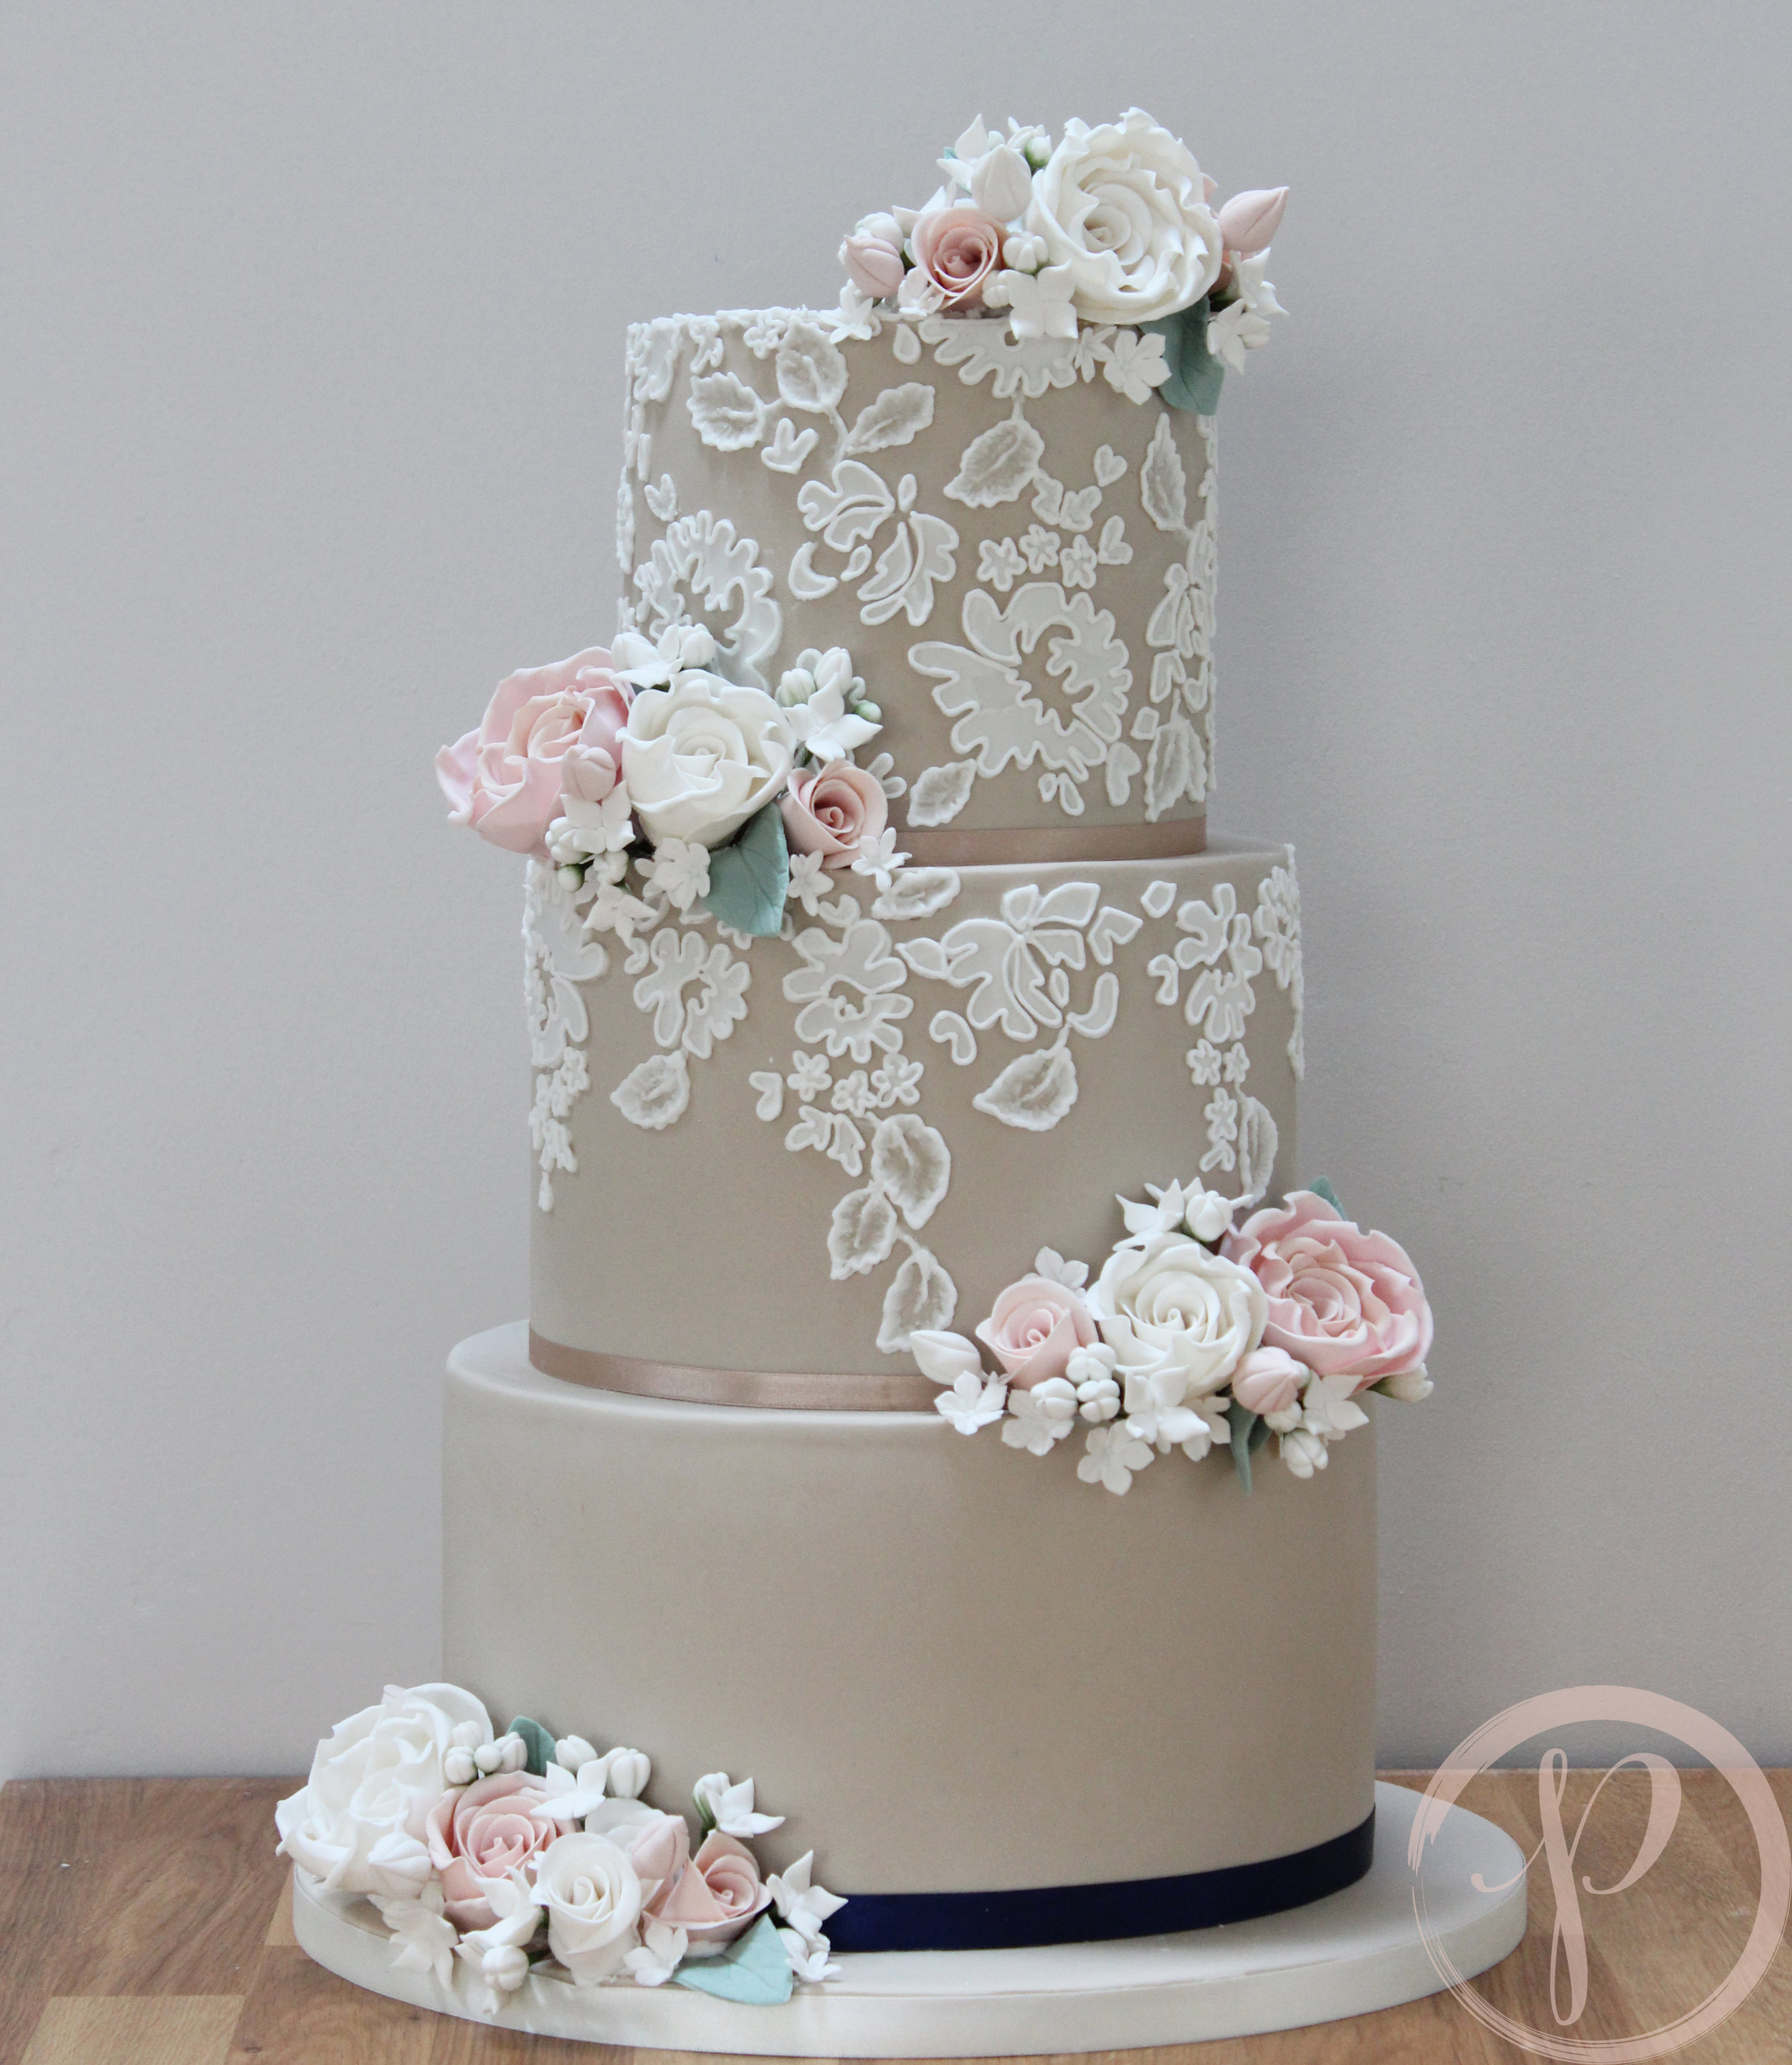 mocha and lace wedding cake with sugar flowers.jpg